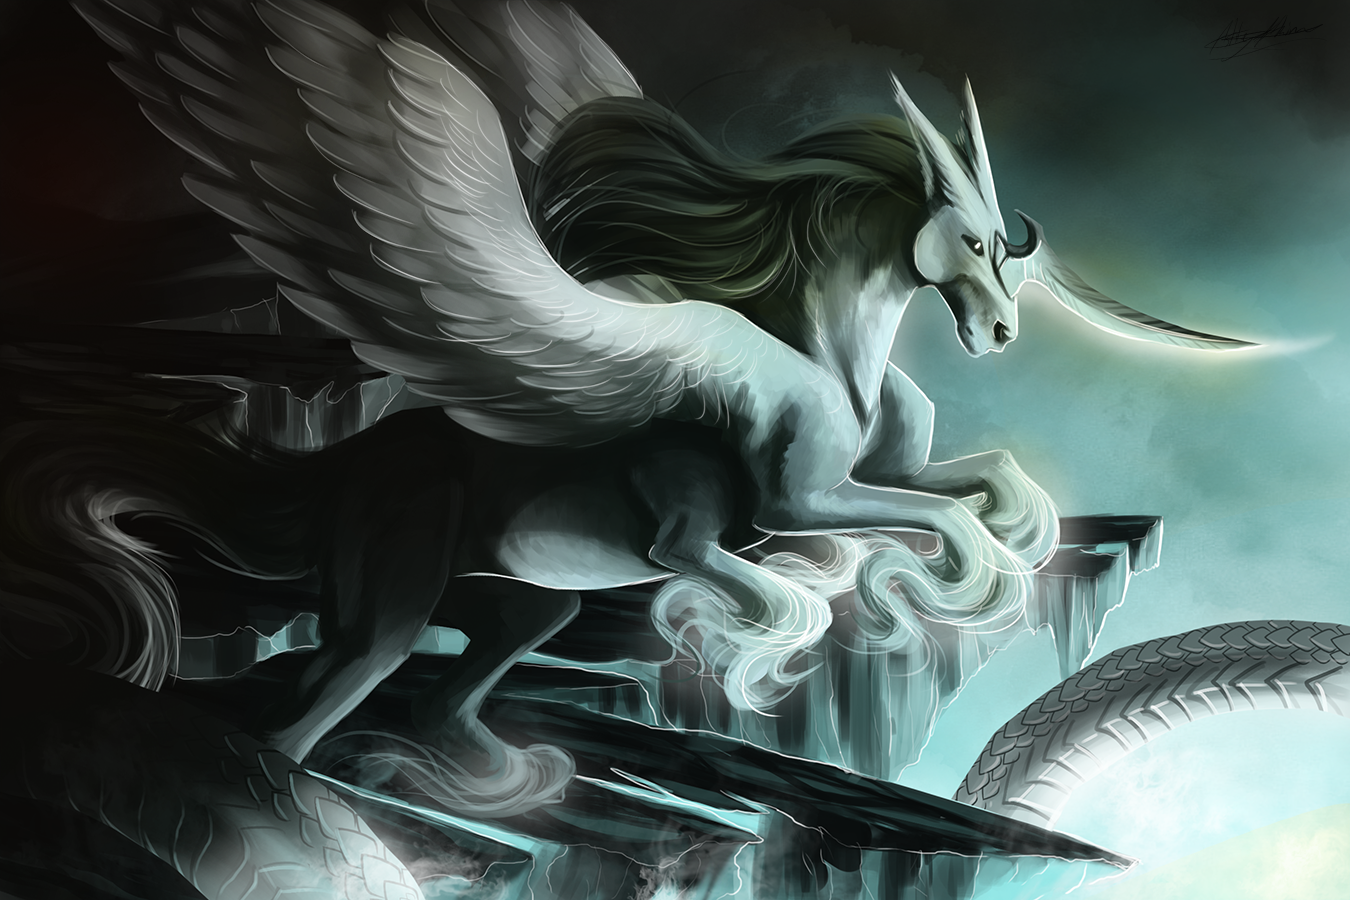 Of Myth or Legend by RestrictedShadow